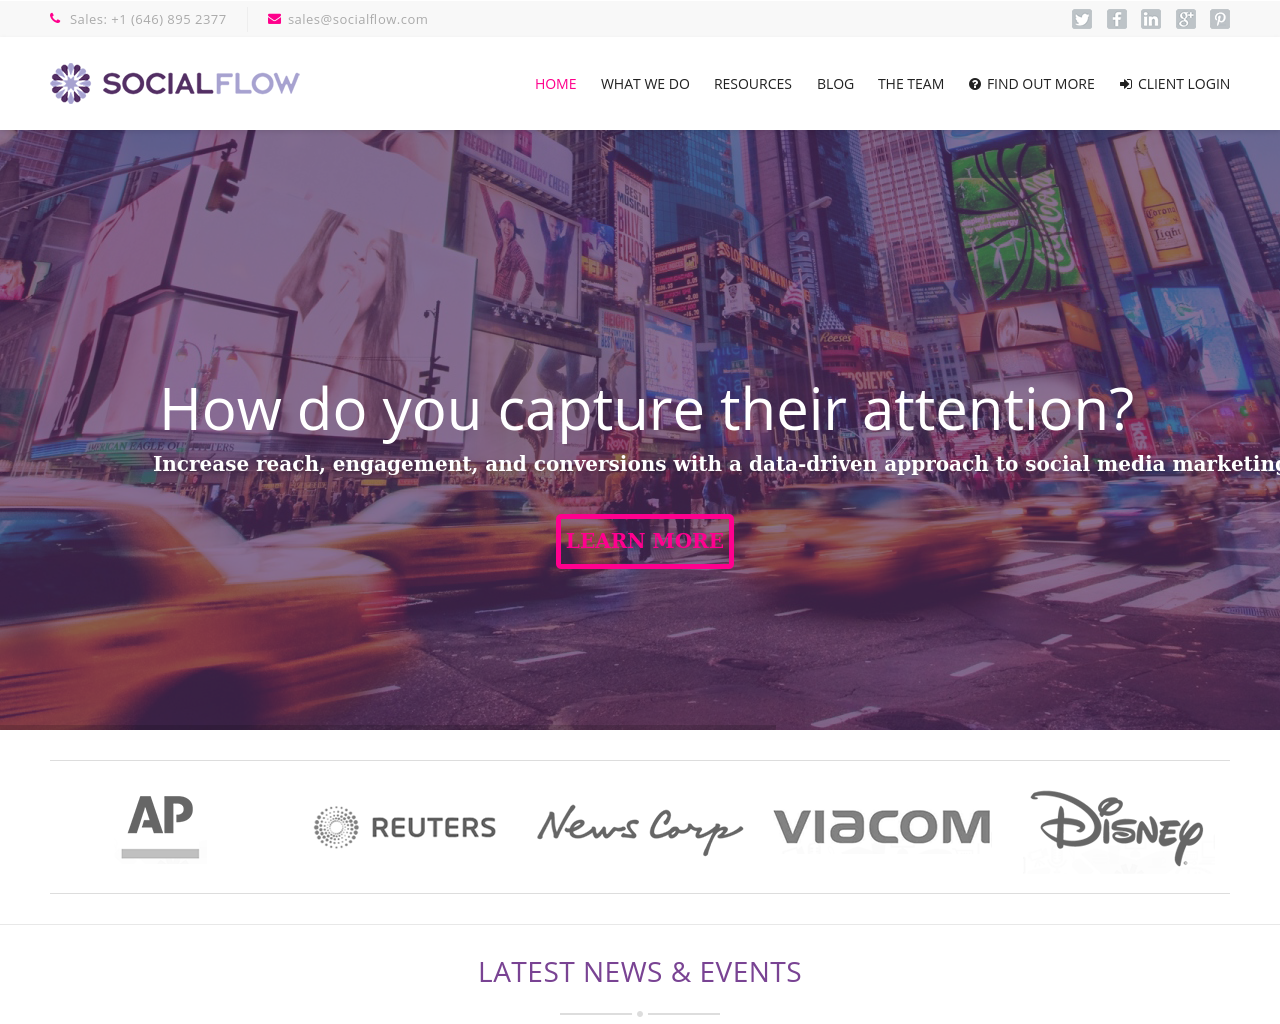 Socialflow-Advertising-Reviews-Pricing